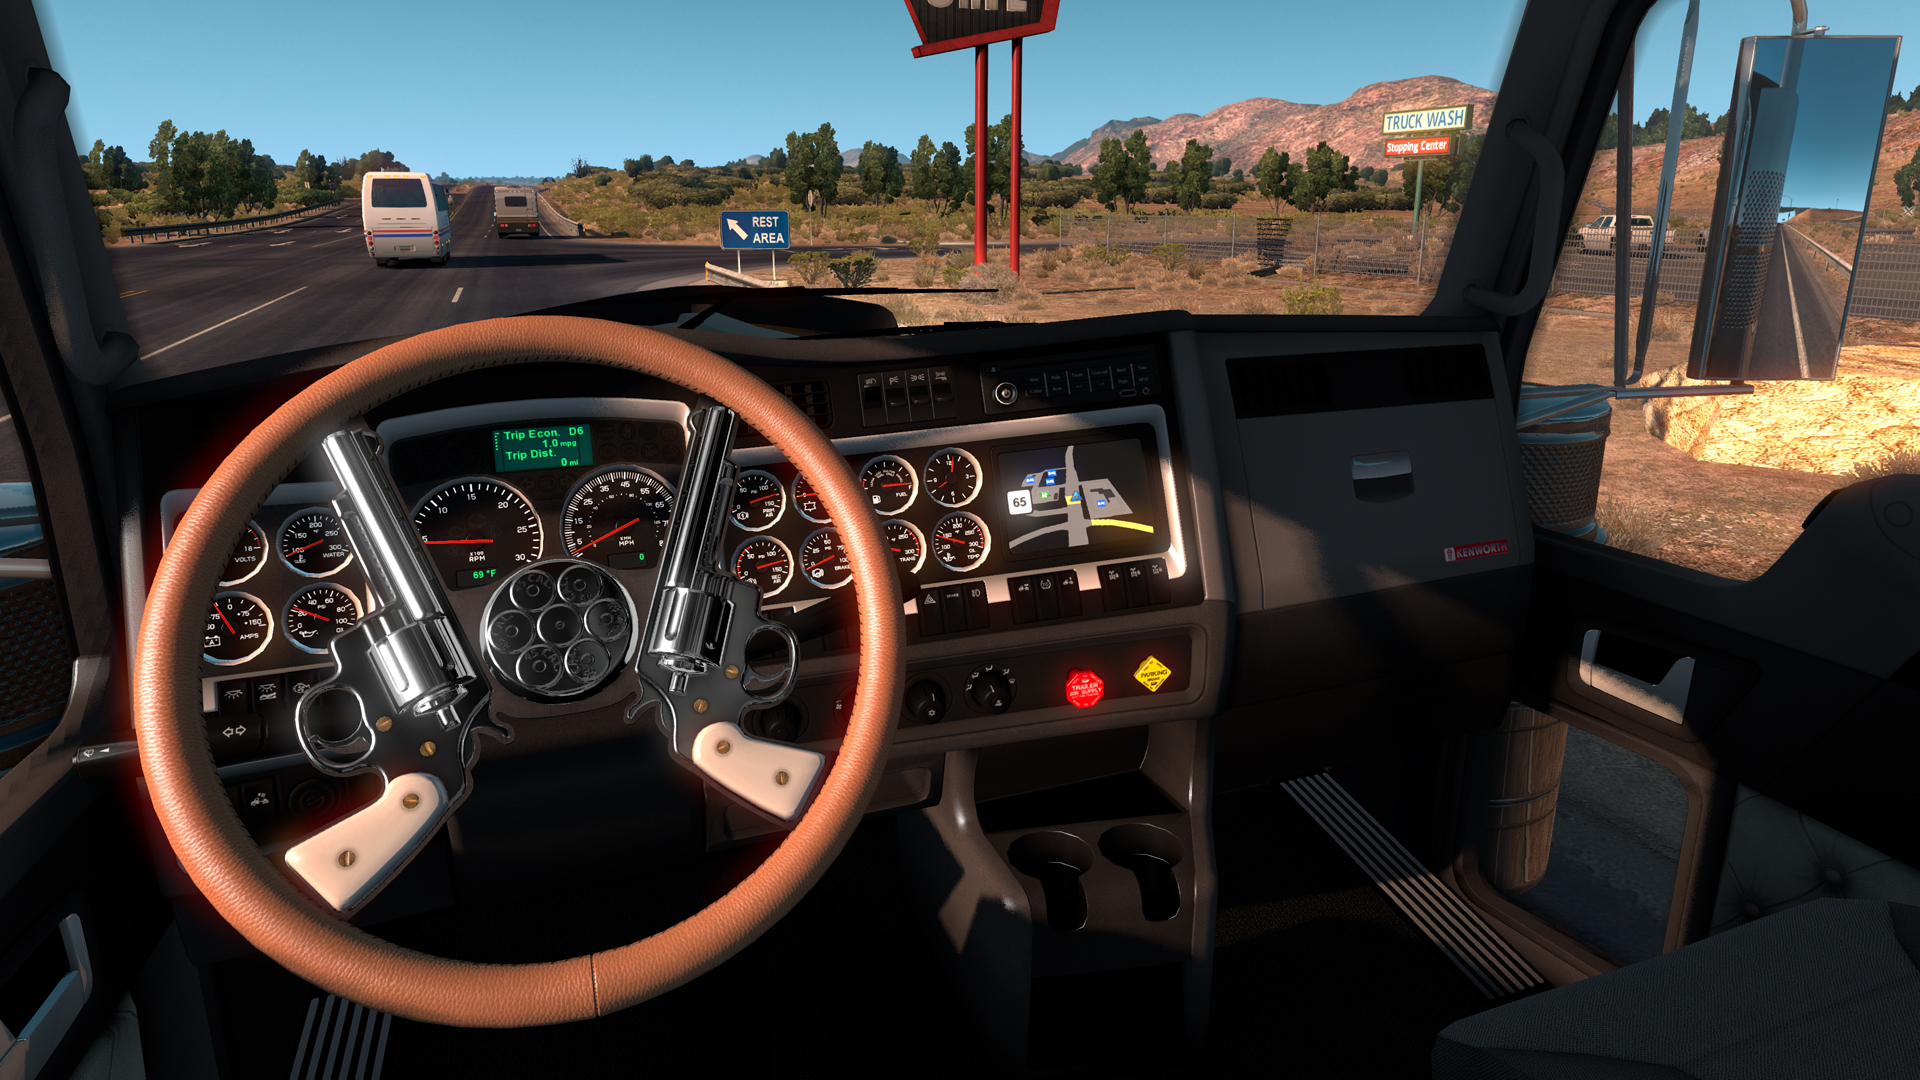 Euro Truck Simulator 2 Steering Wheel Shifter - Year of